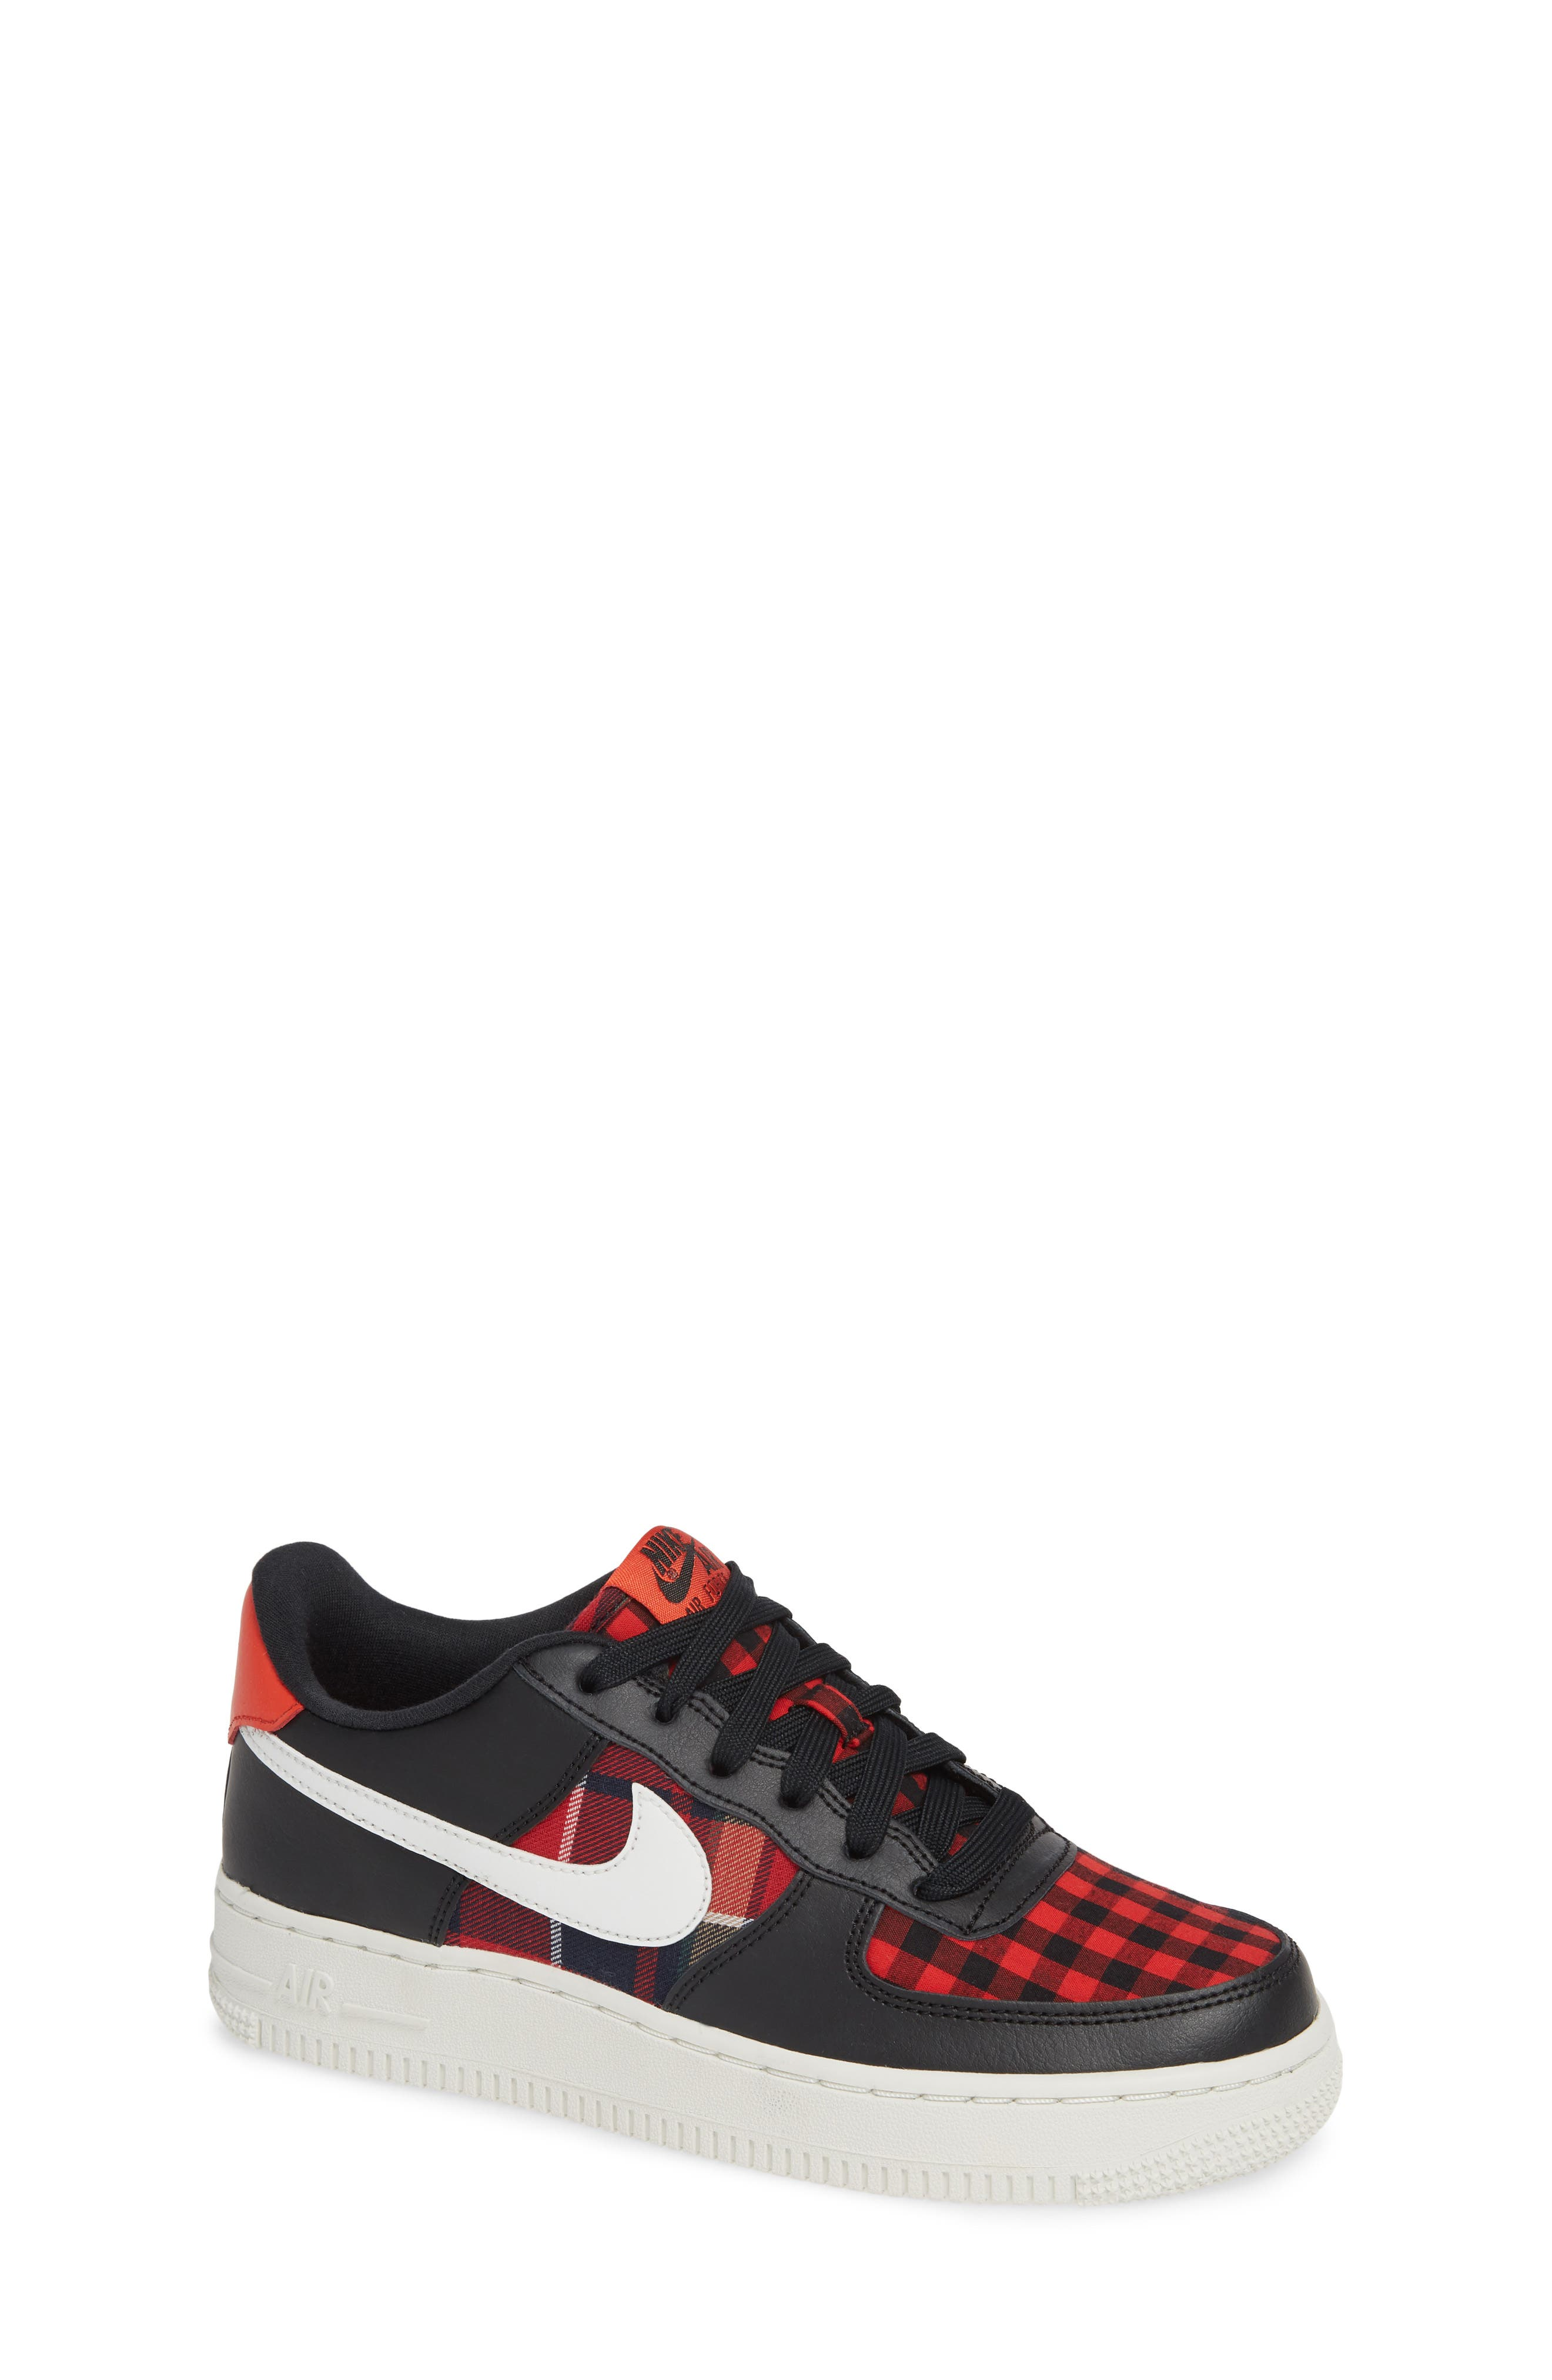 Air Force 1 LV8 Sneaker,                             Main thumbnail 1, color,                             BLACK/ SUMMIT RED